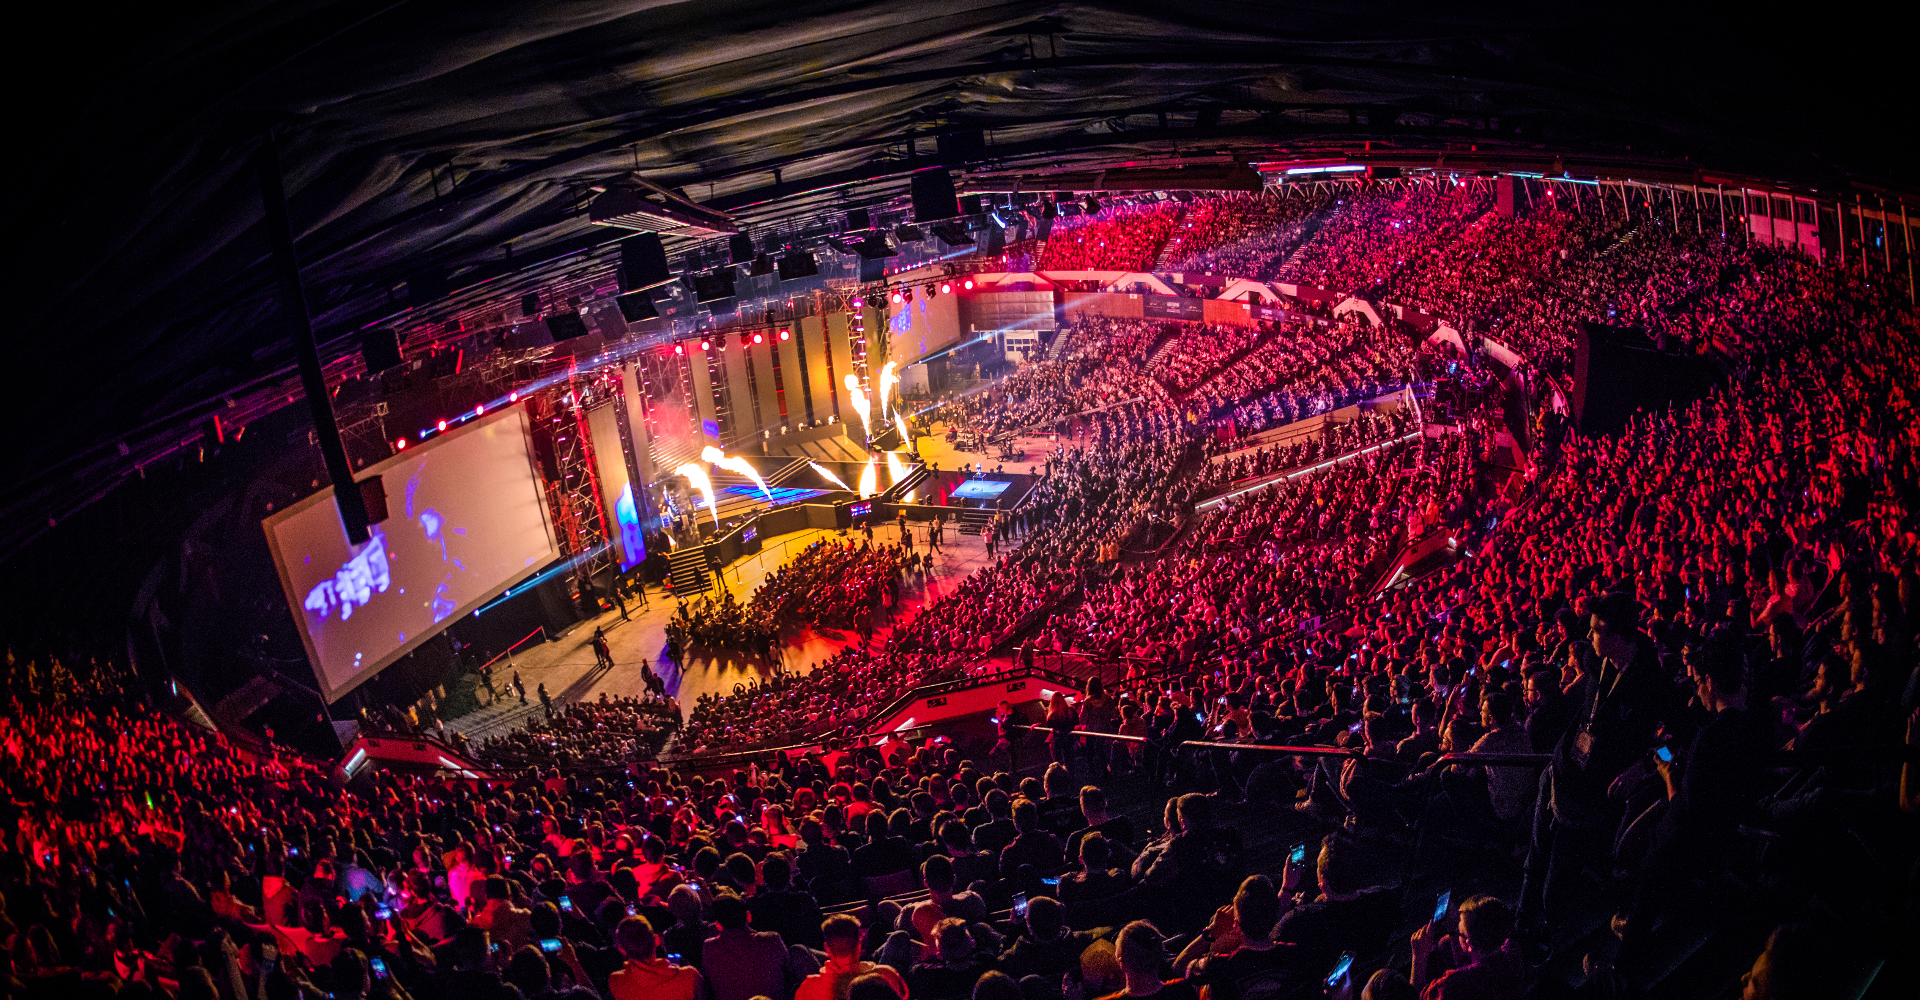 Intel<sup>®</sup> Extreme Masters 2018